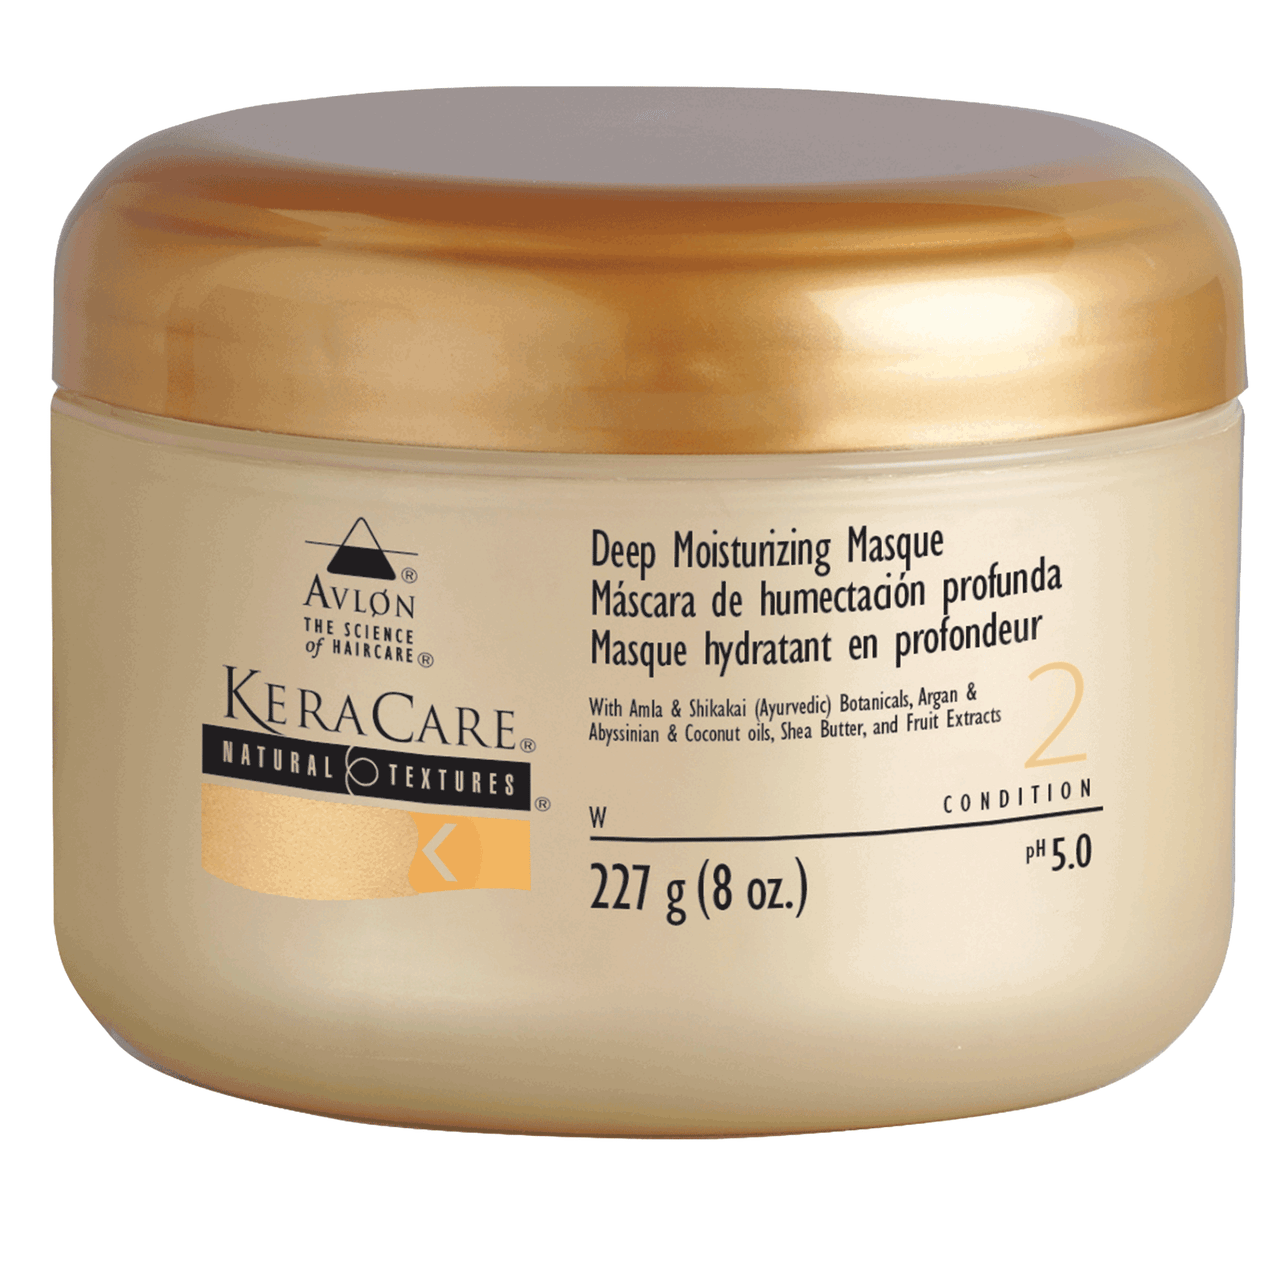 Keracare Natural Textures Deep Moisturizing Masque 8oz The Glamour Shop